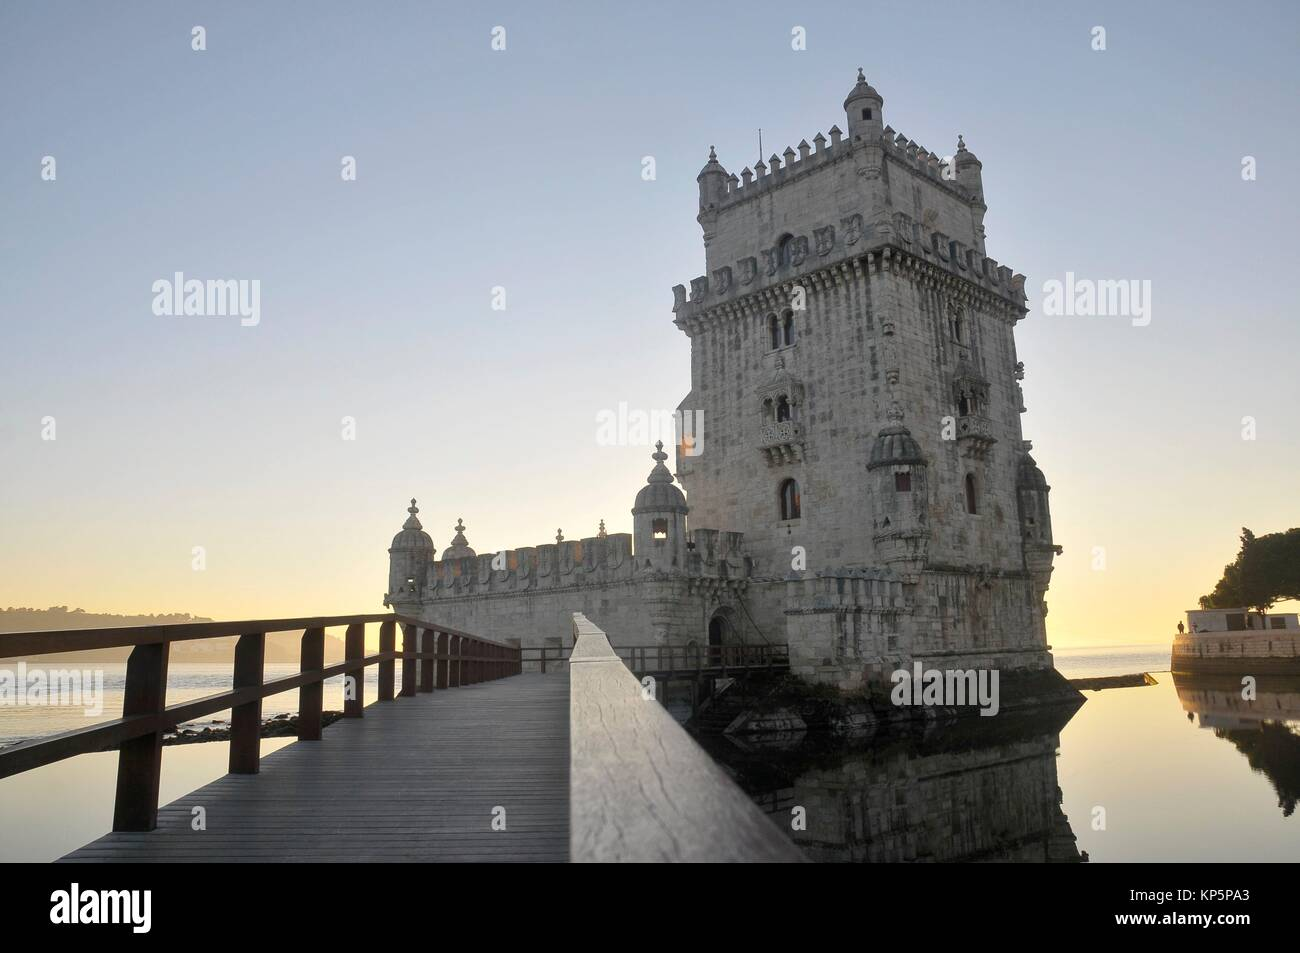 Belem tower on the Tage river in Lisbon near the Ocean Atlantic - Stock Image